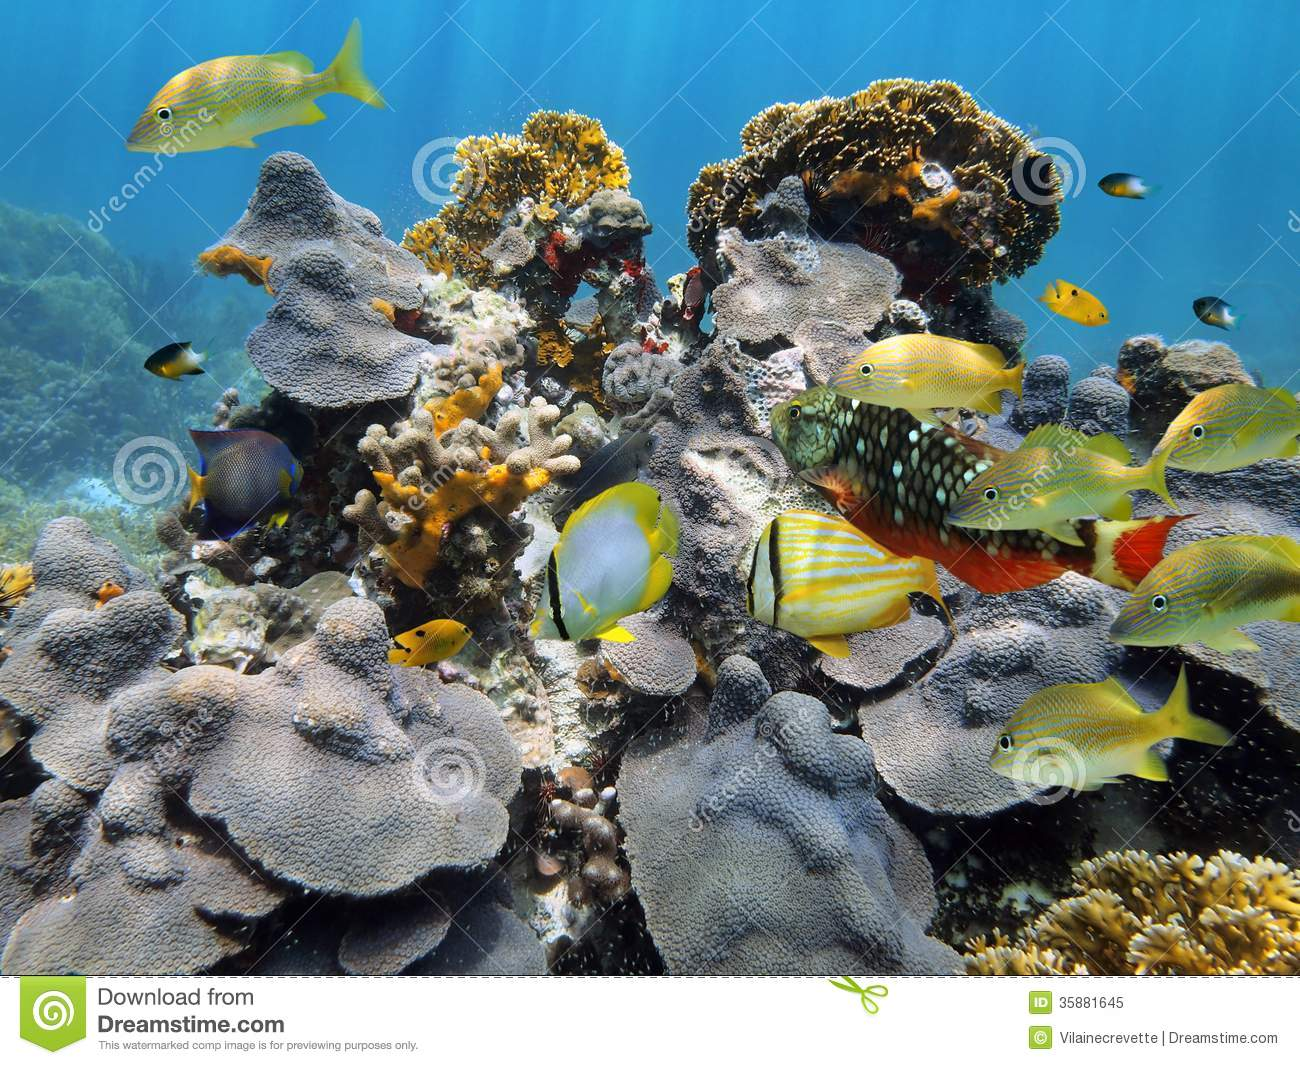 Under water coral and reef fish royalty free stock photo for Caribbean reef fish